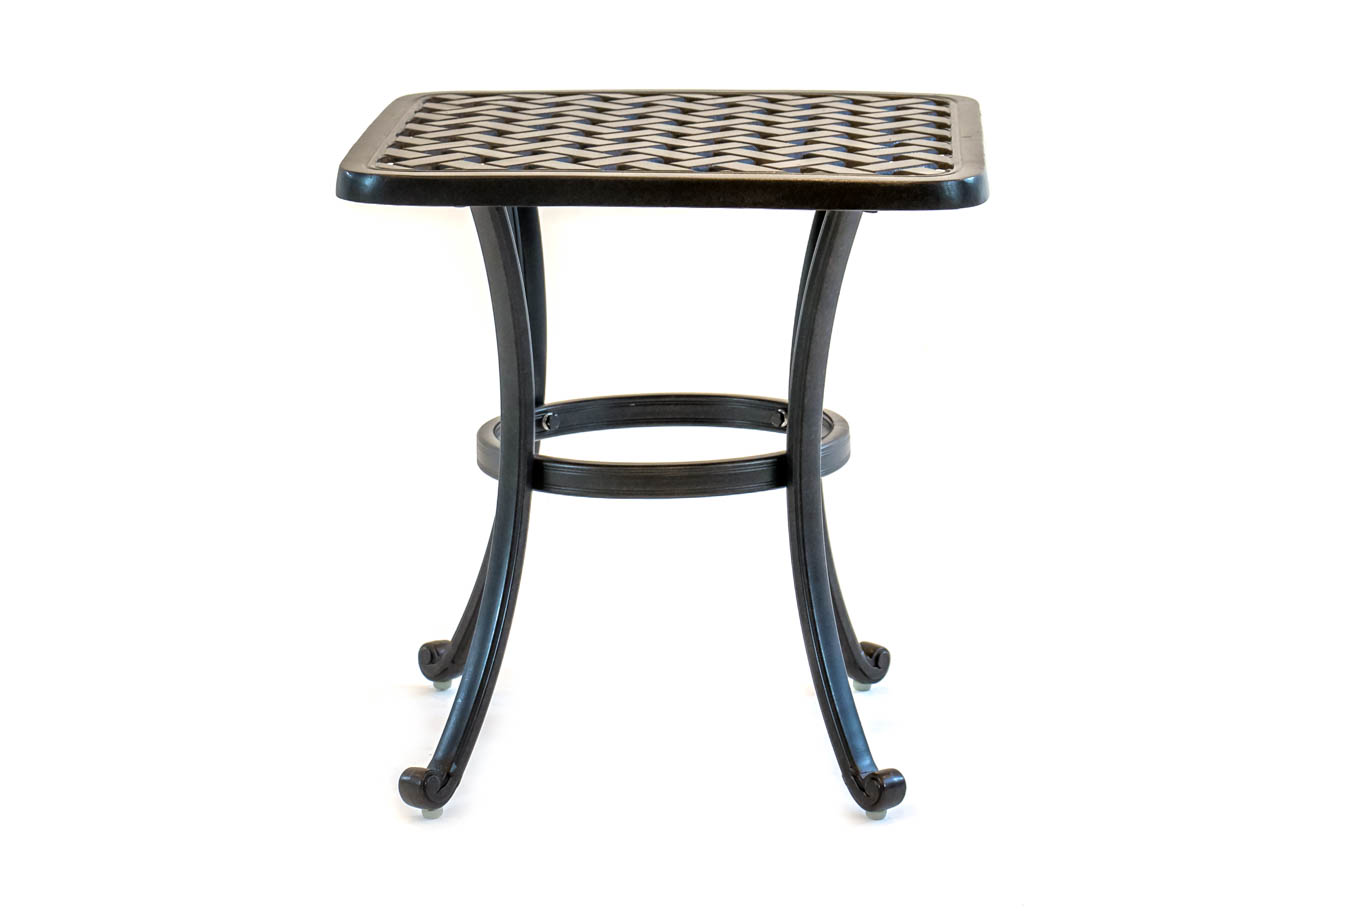 furniture archives page premium patio hanamint crossweave aluminum side table stratford wicker folding accent bronze thin ikea round with drawer coffee wheels storage cupboards